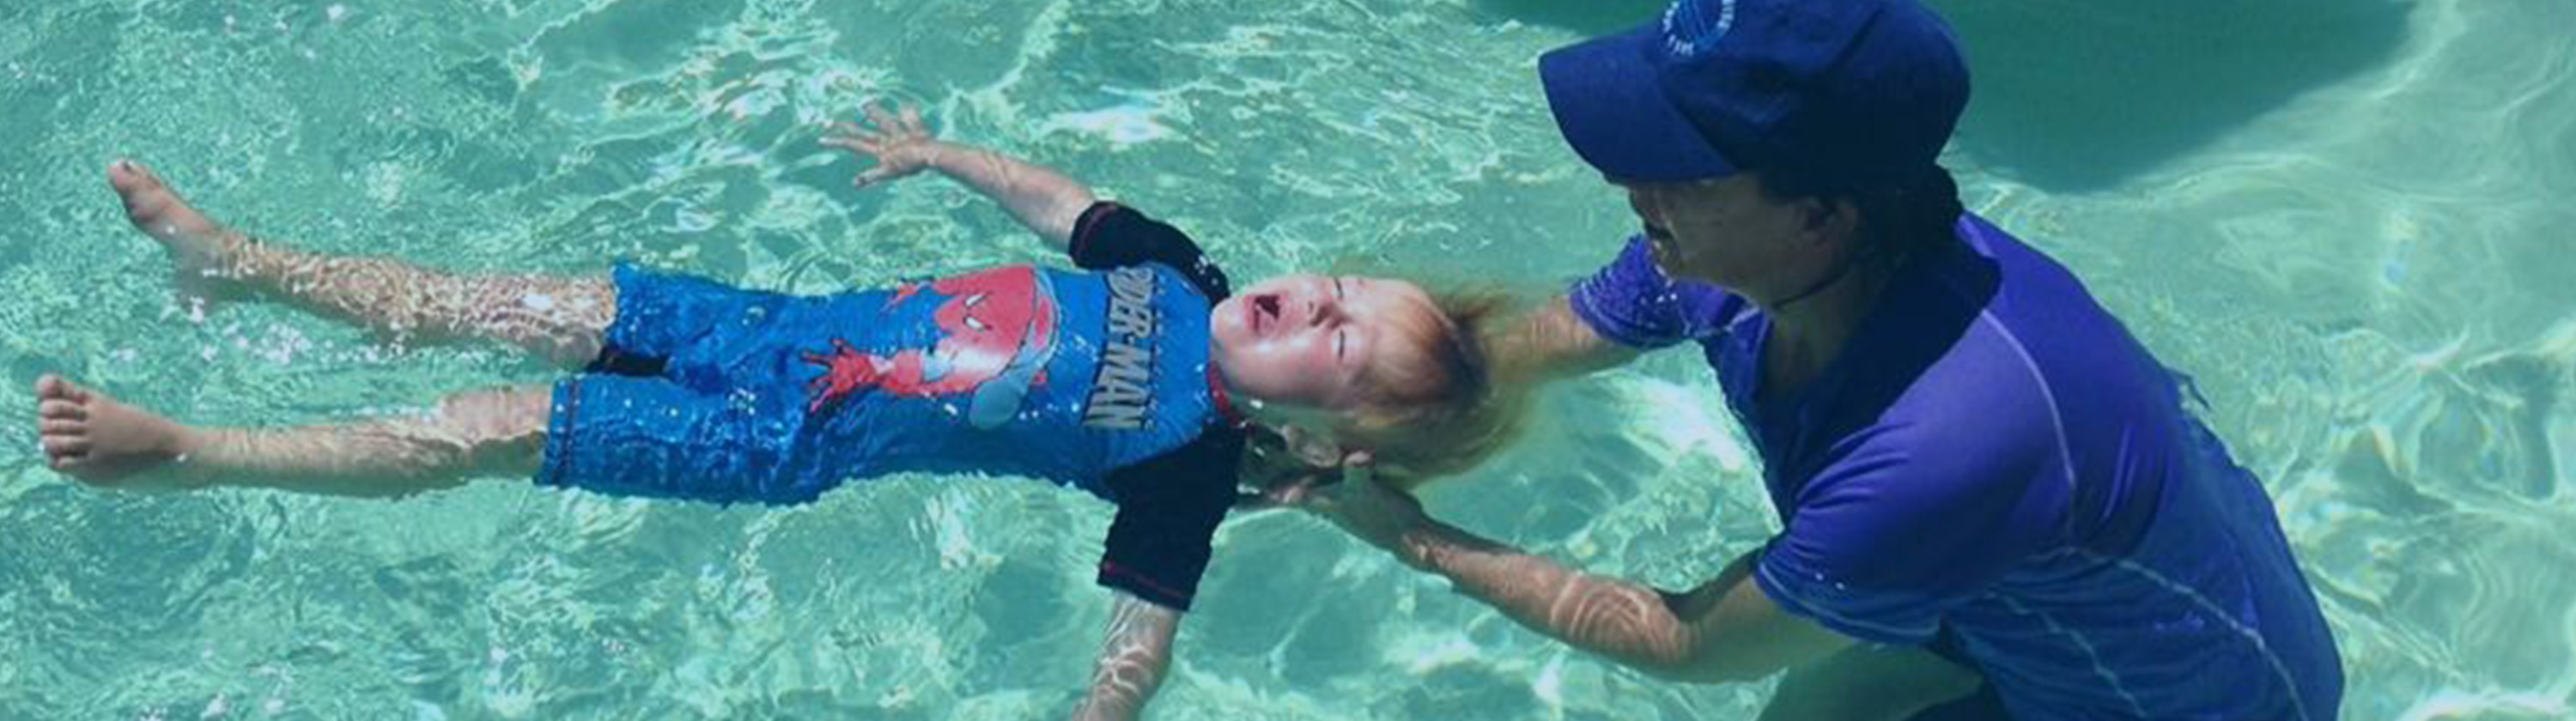 Infant_Aquatics_Survival_Swimming_lessons_Perth_wt_instructor